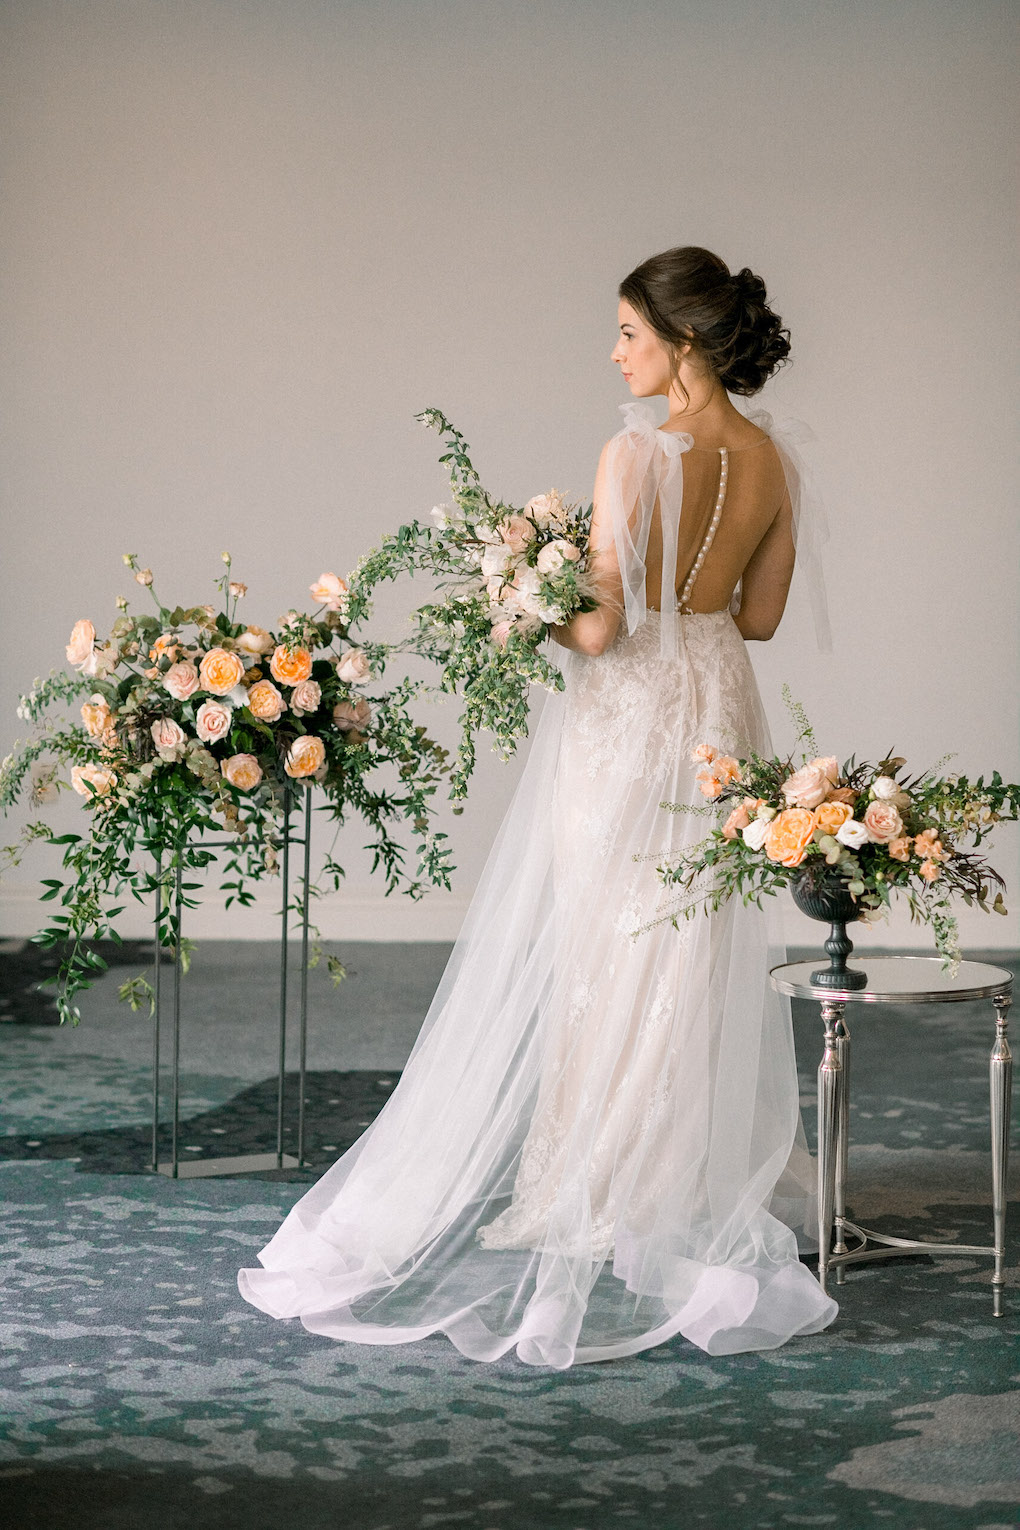 Wedding dress with soft bows: Soft and Subtle Palettes of Spring Blossoms | Editorial Shoot at The Renaissance Pittsburgh by Exhale Events. See more inspiration at exhale-events.com!